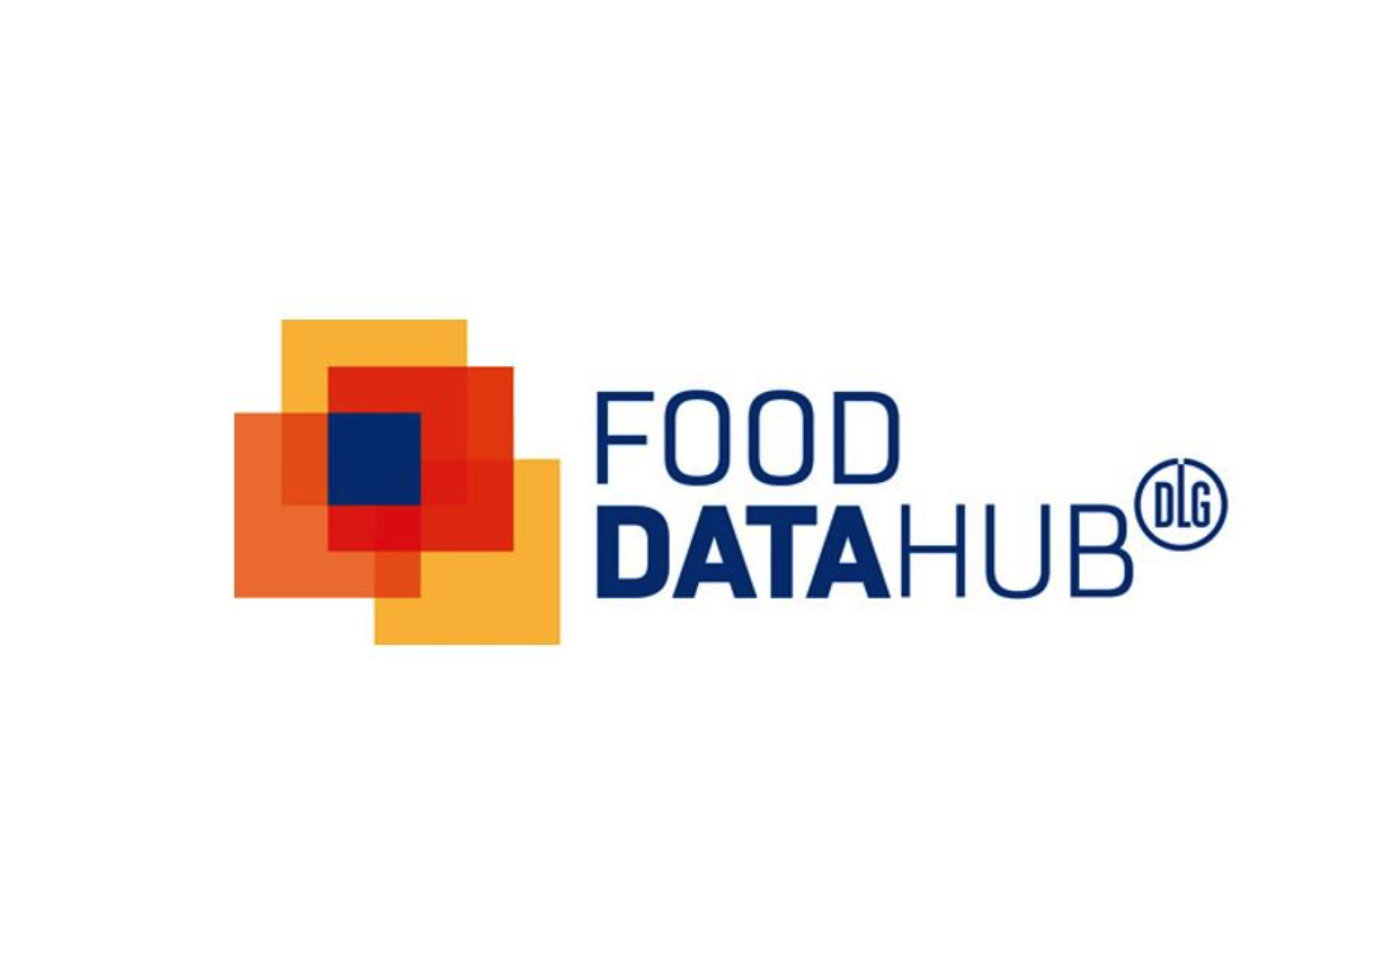 DLG Food Data Hub